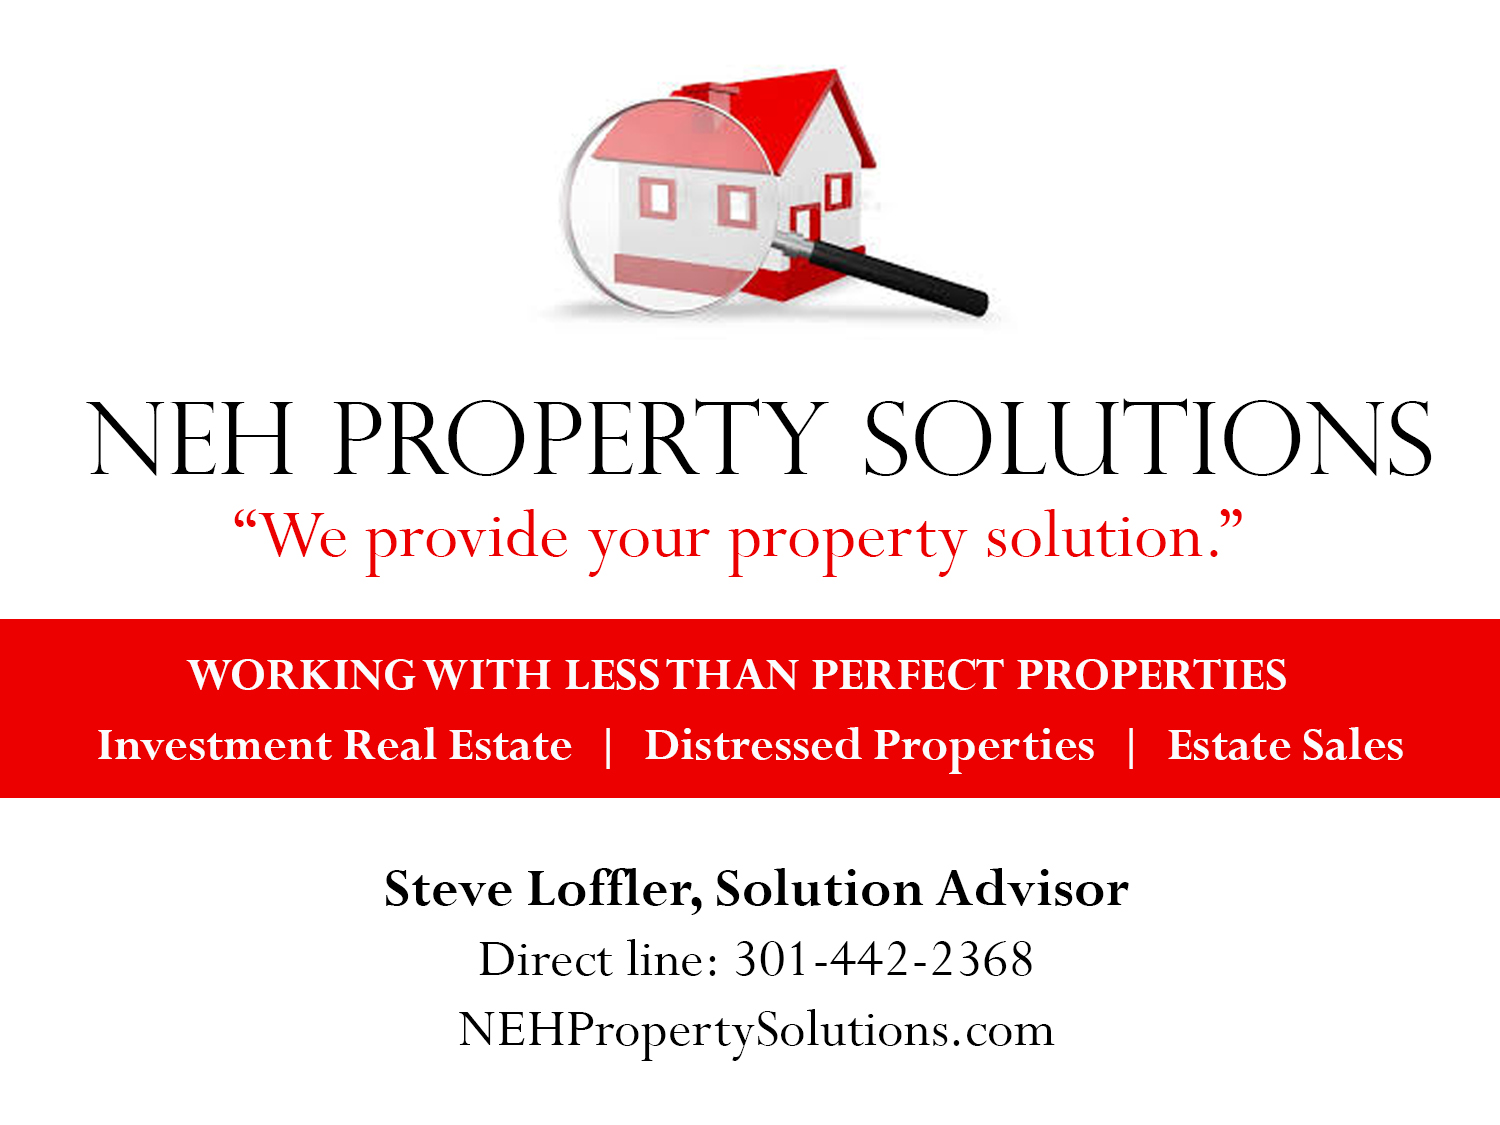 NEH Property Solutions